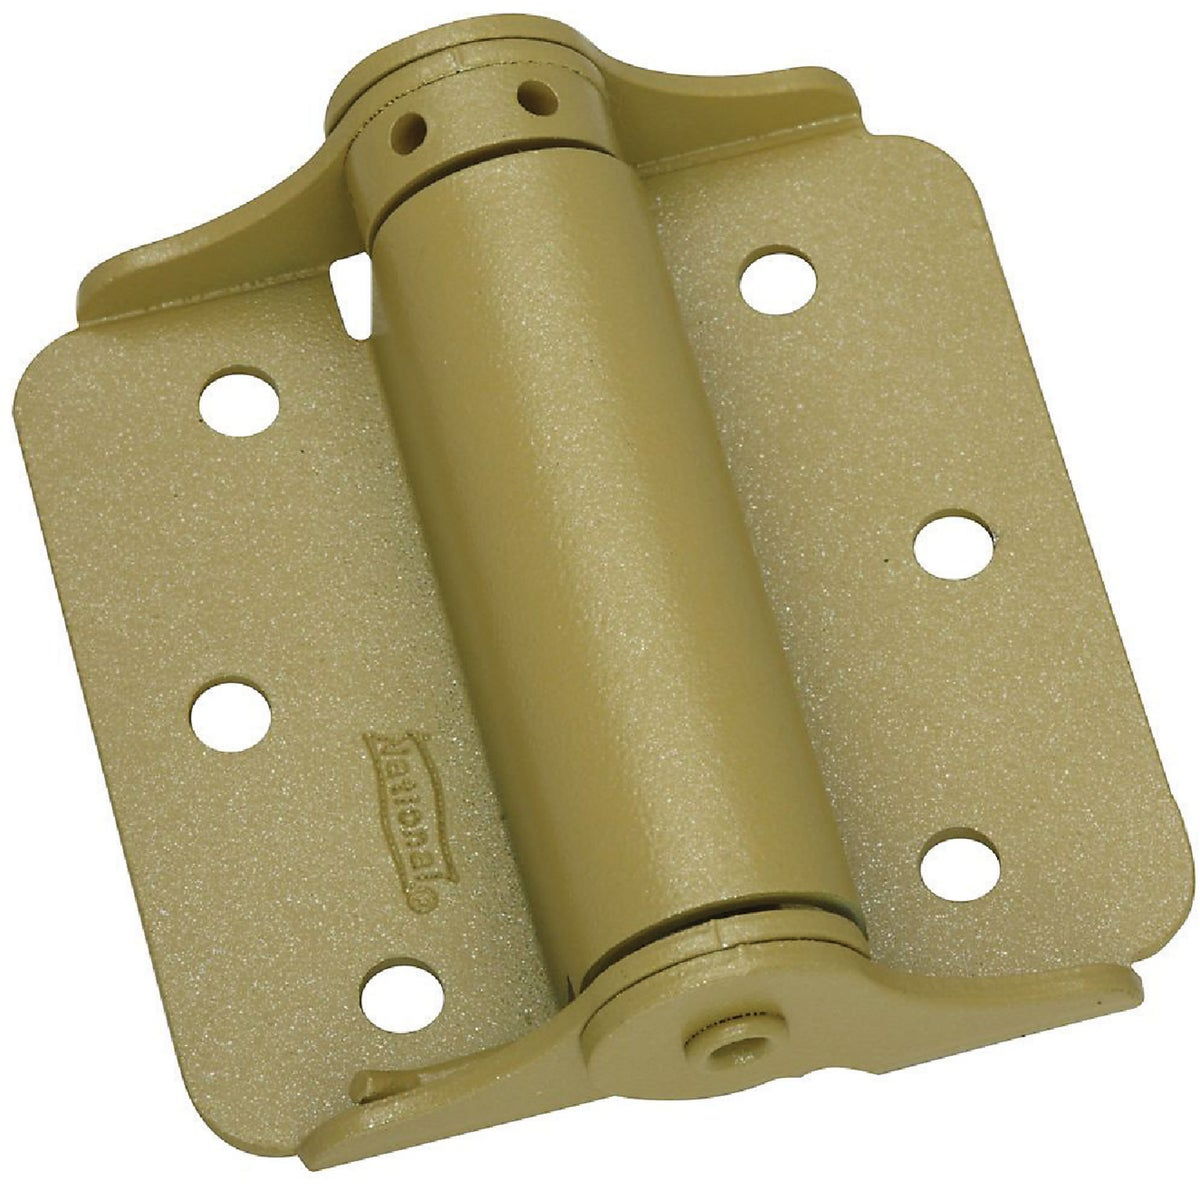 "3"" BRASS SPRING HINGE - N115006 by National Mfg Co"